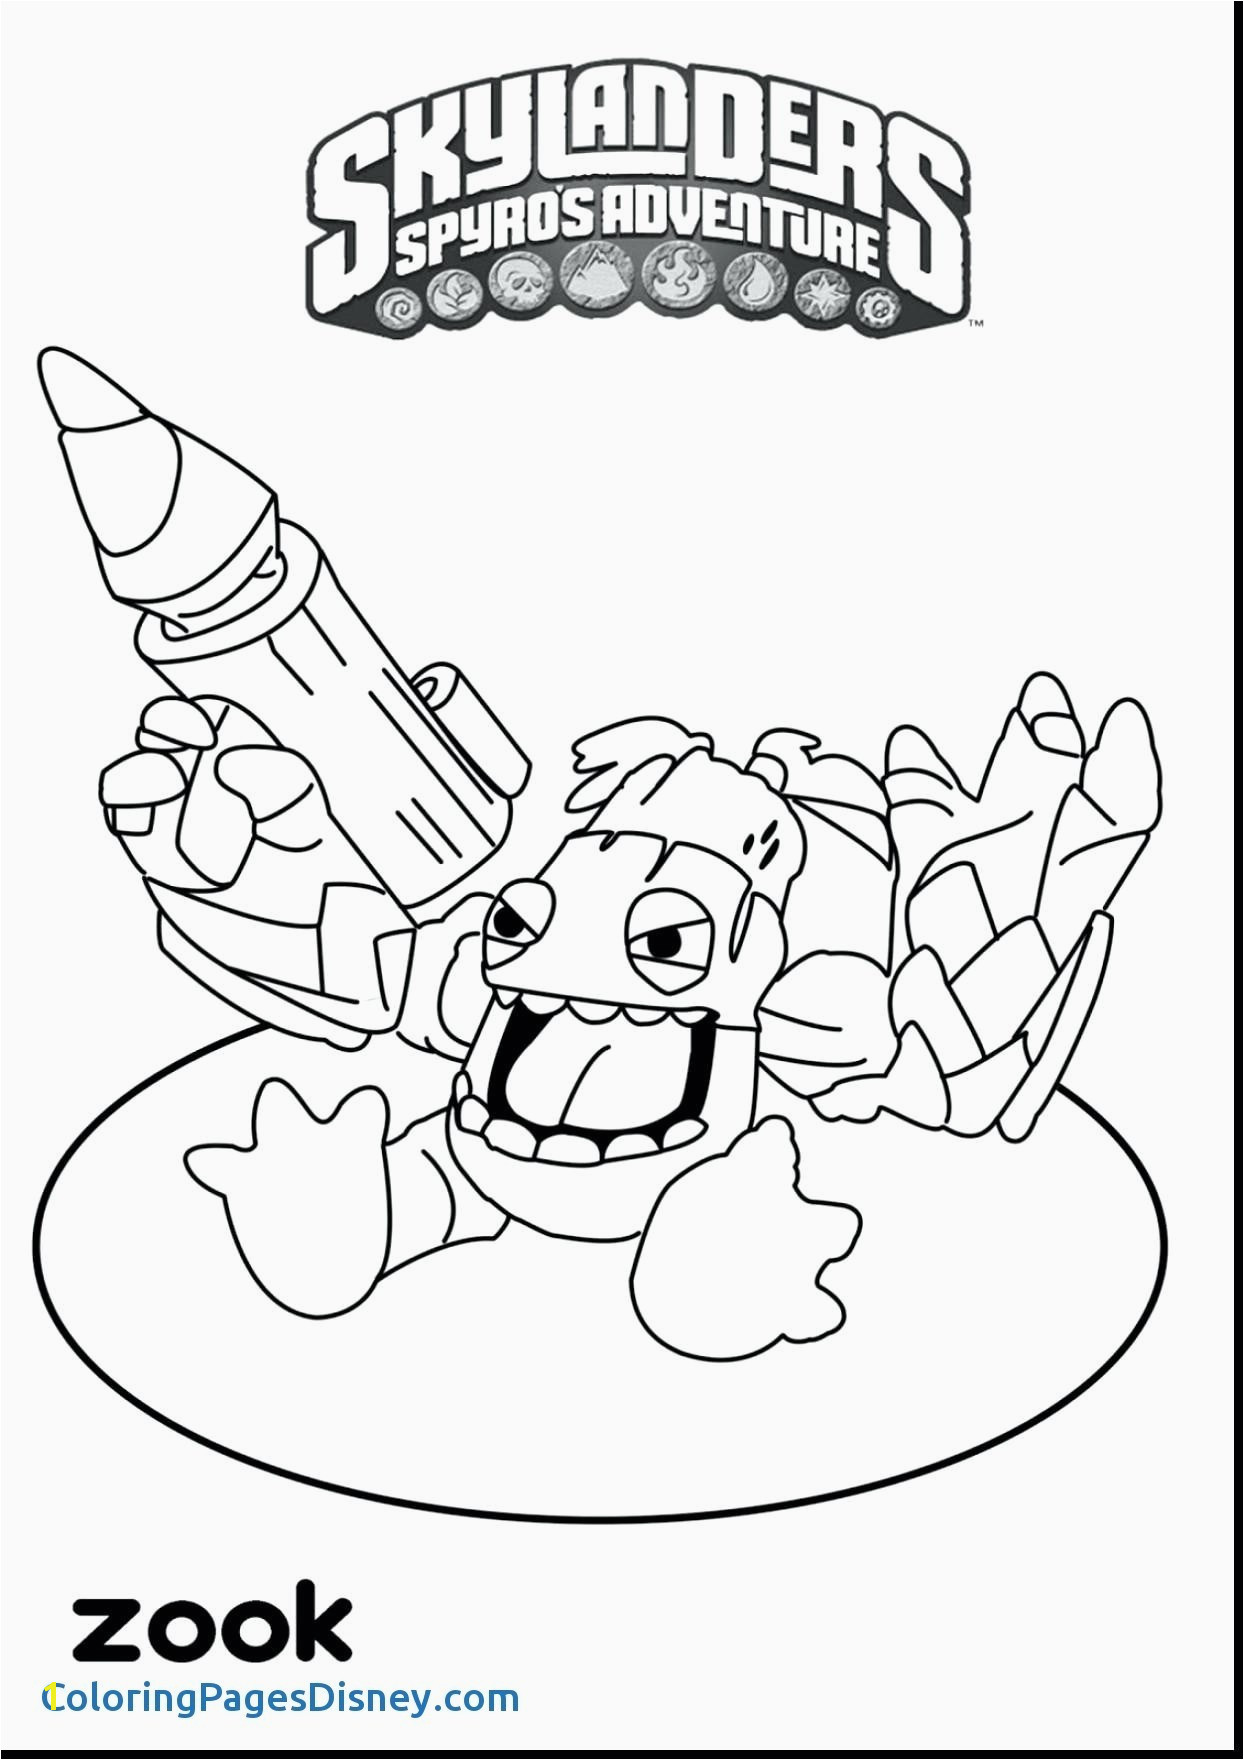 Peter Preaching at Pentecost Coloring Pages Lovely Peter Preaching at Pentecost Coloring Pages Coloring Pages